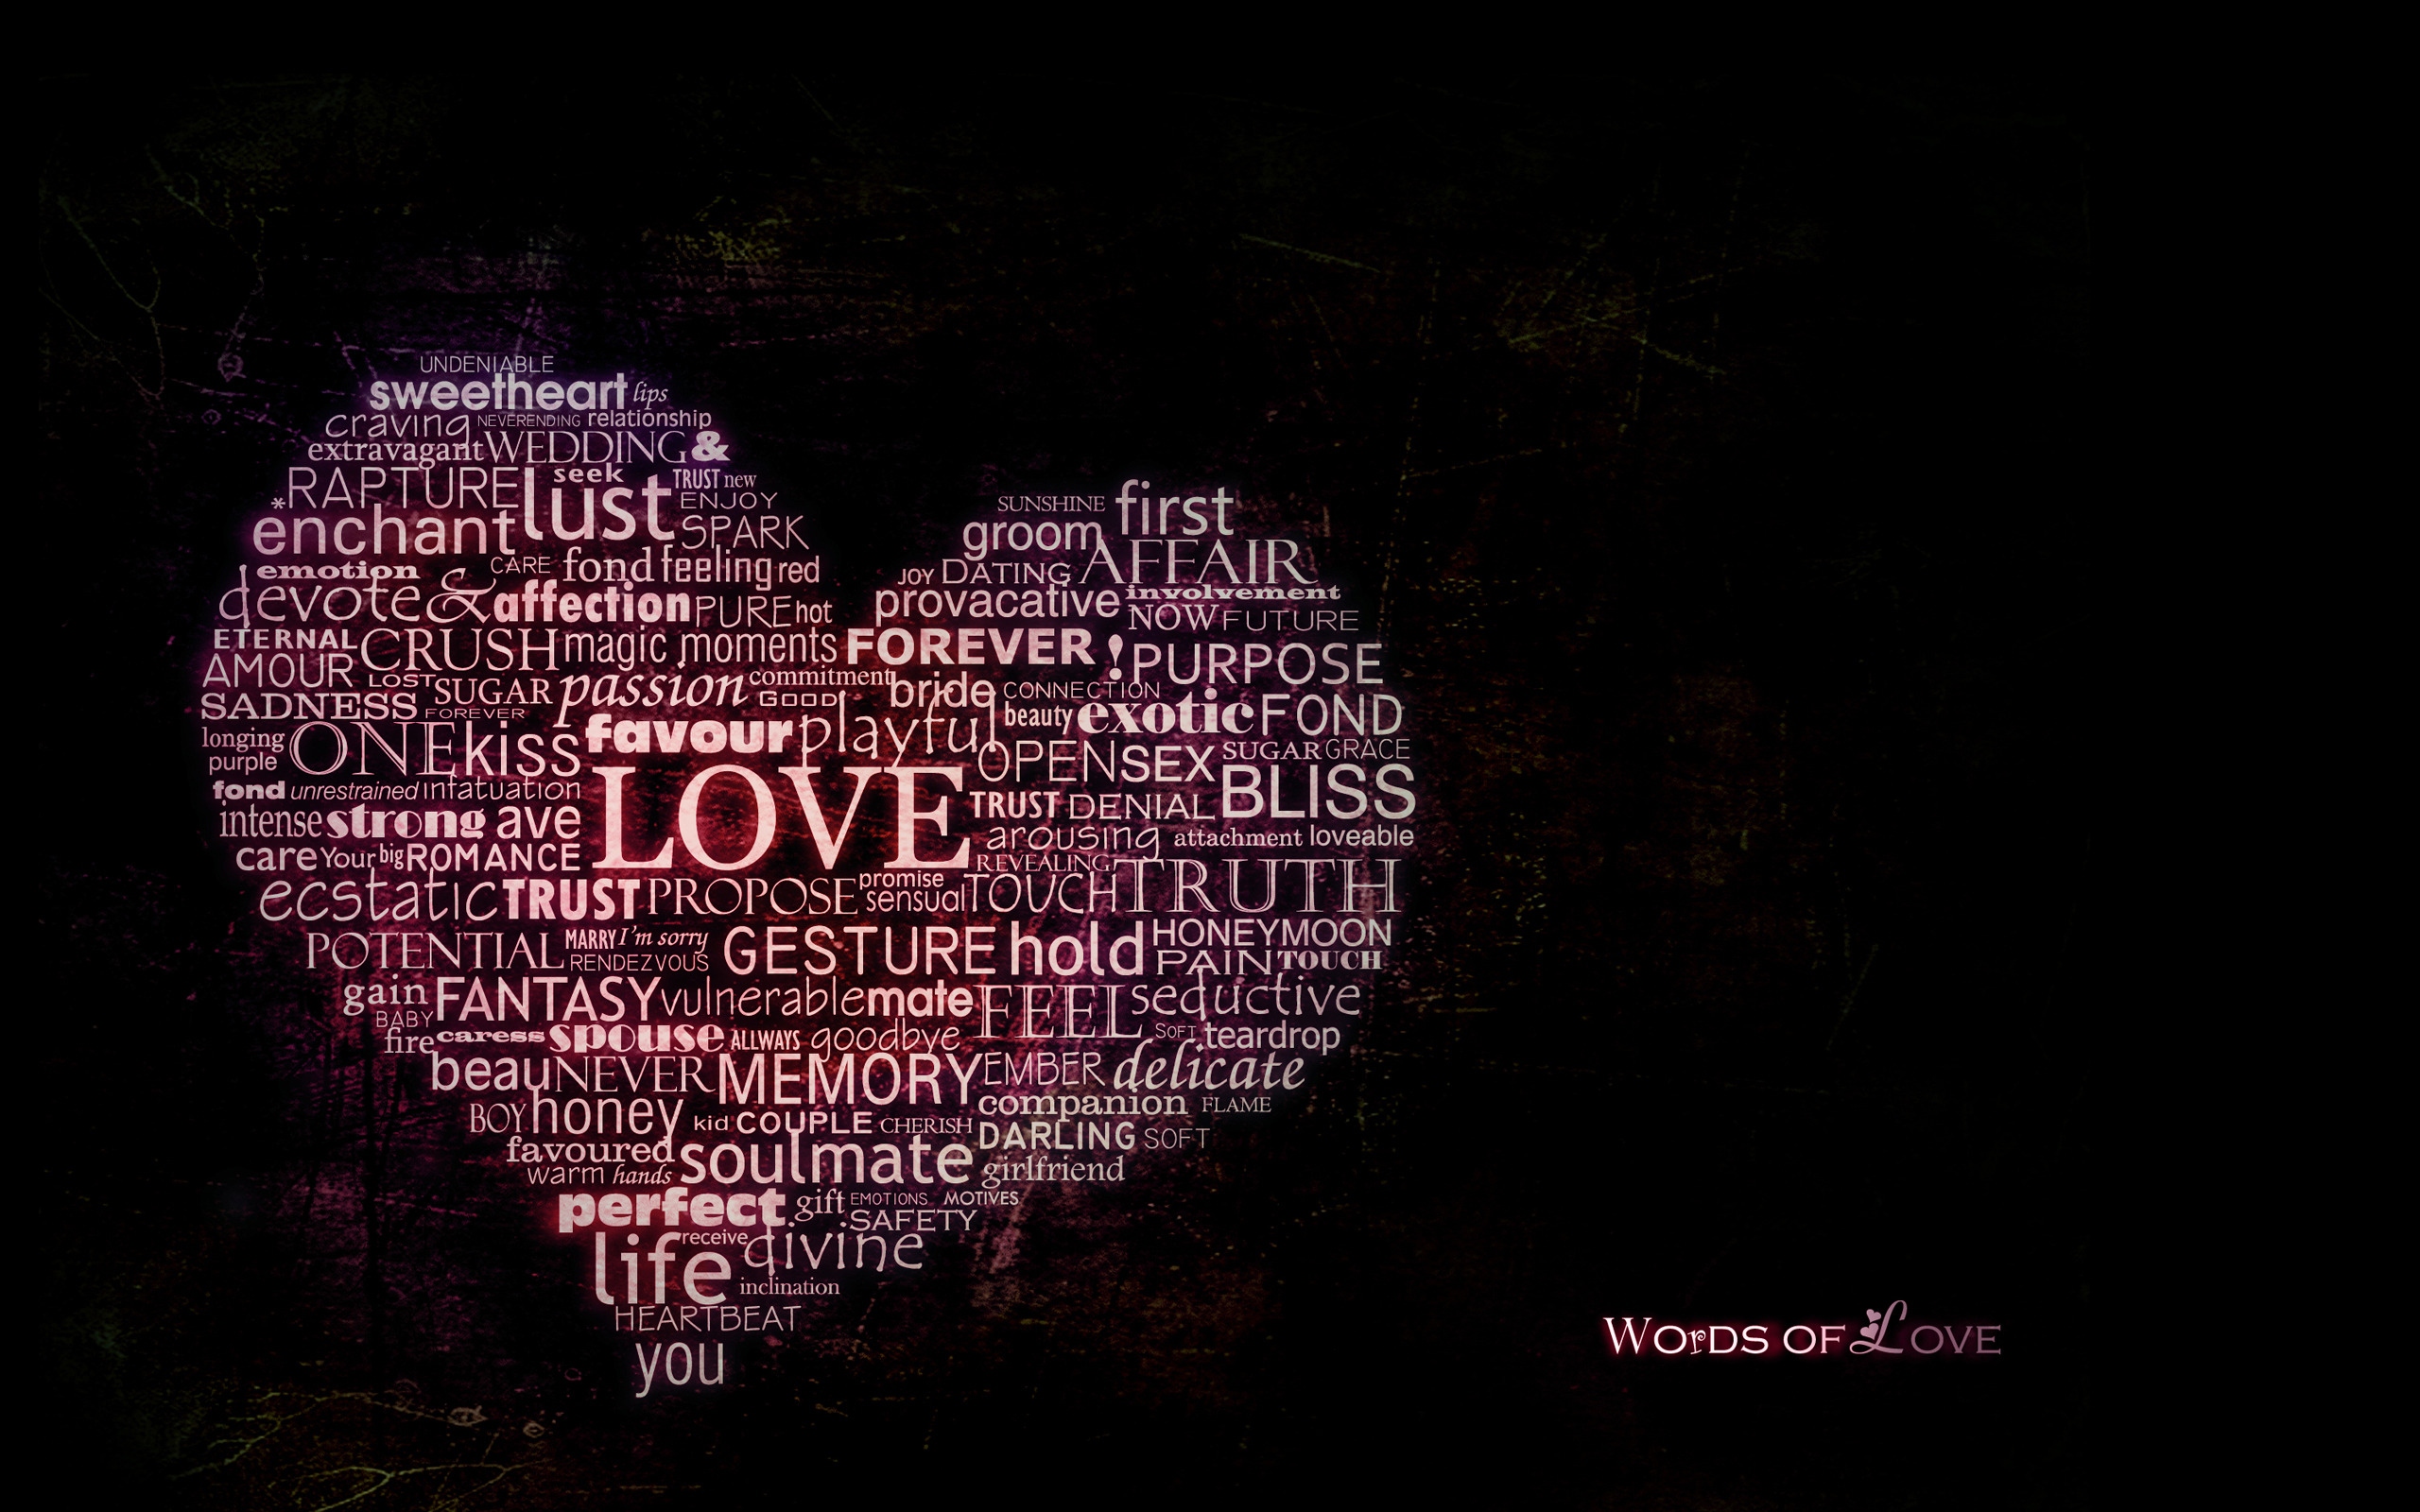 Love Wallpaper Hd For Laptop : Love Wallpaper Laptop HD #4110 Wallpaper WallDiskPaper